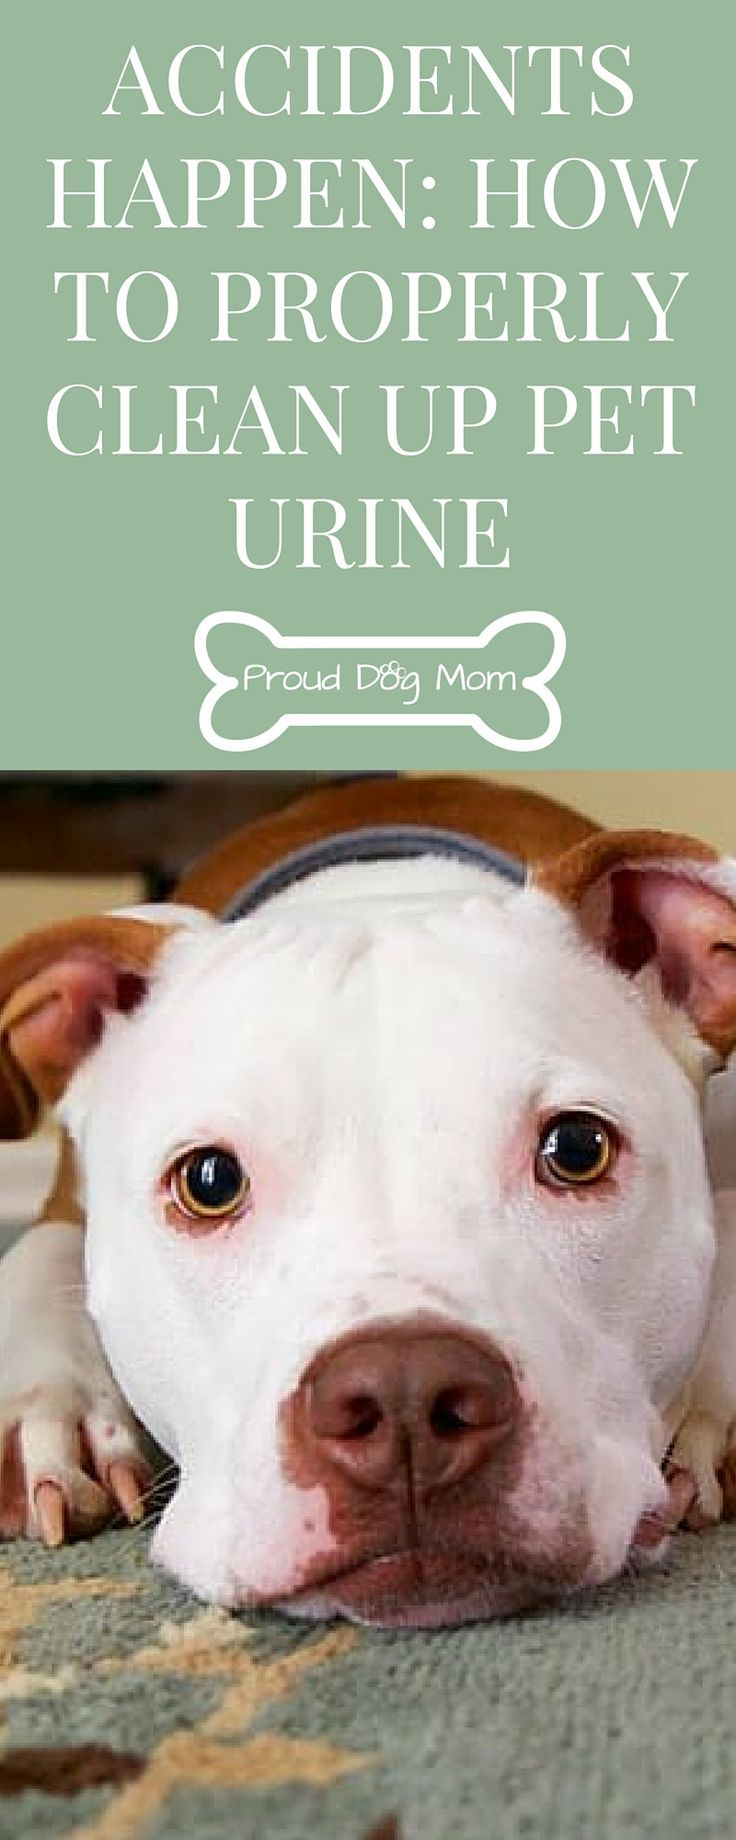 Best 25+ Cleaning pet urine ideas on Pinterest | Dog urine ...